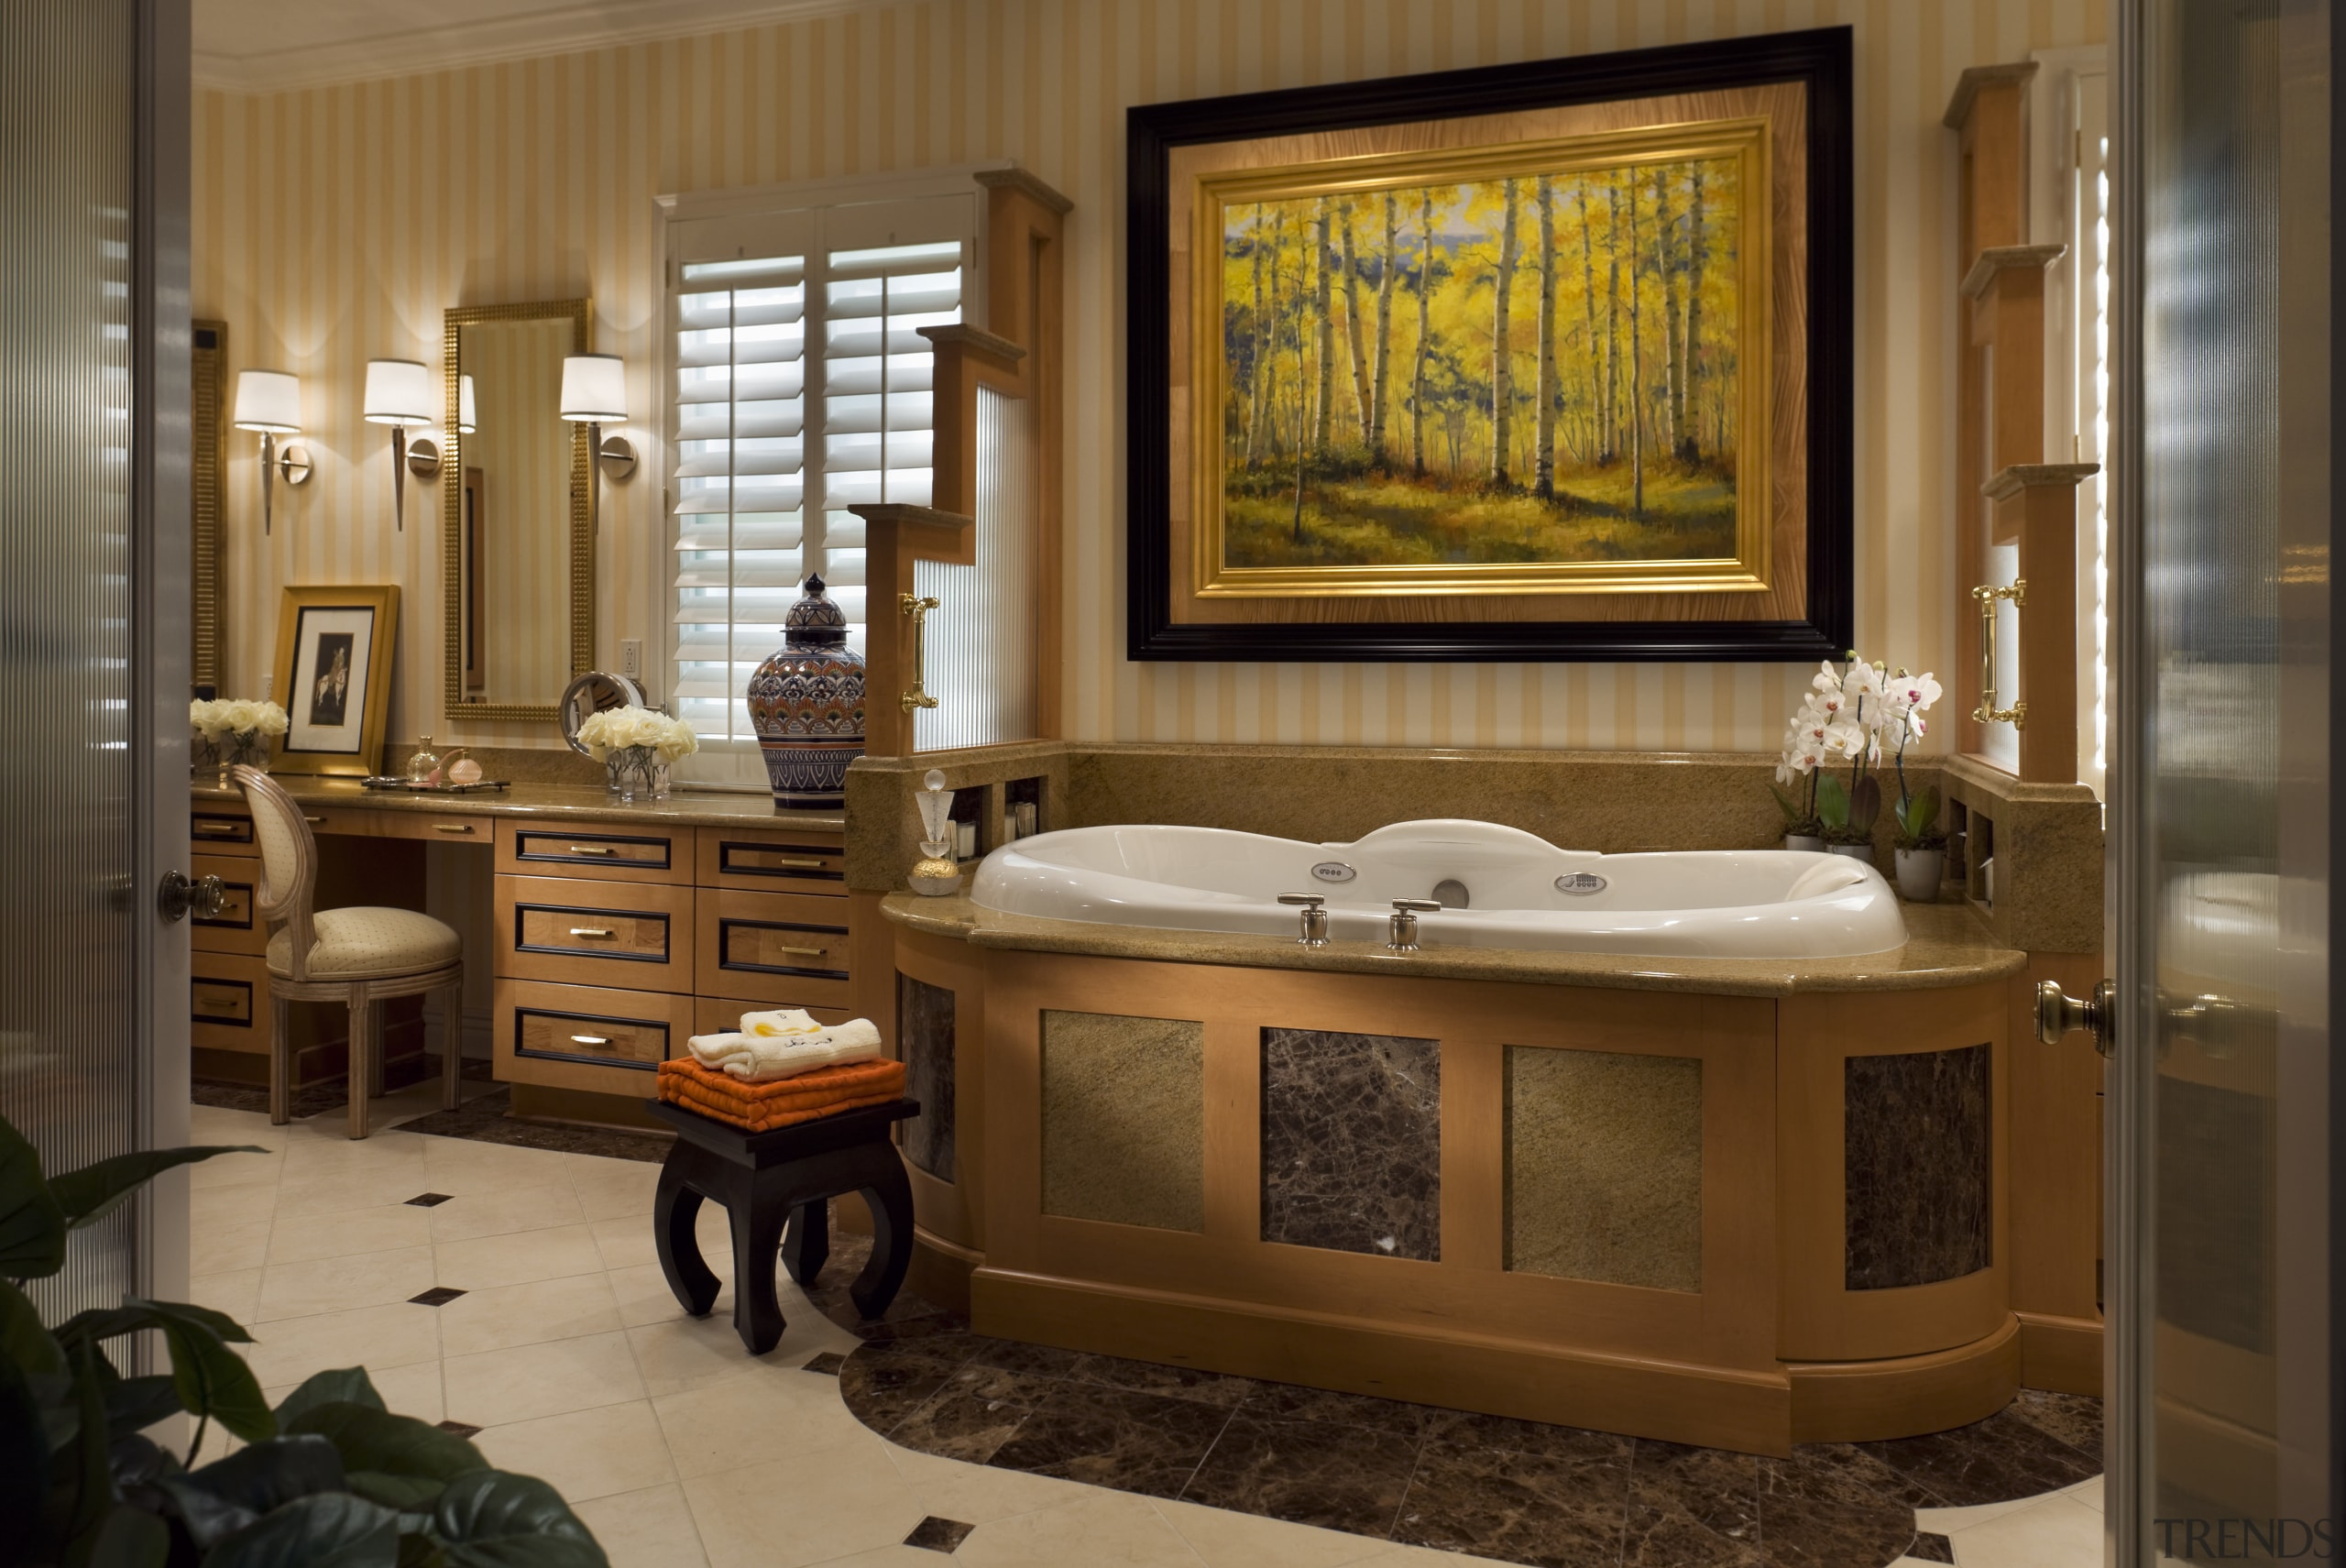 Large bathroom with bathtub & vanity cabinet - bathroom, interior design, room, brown